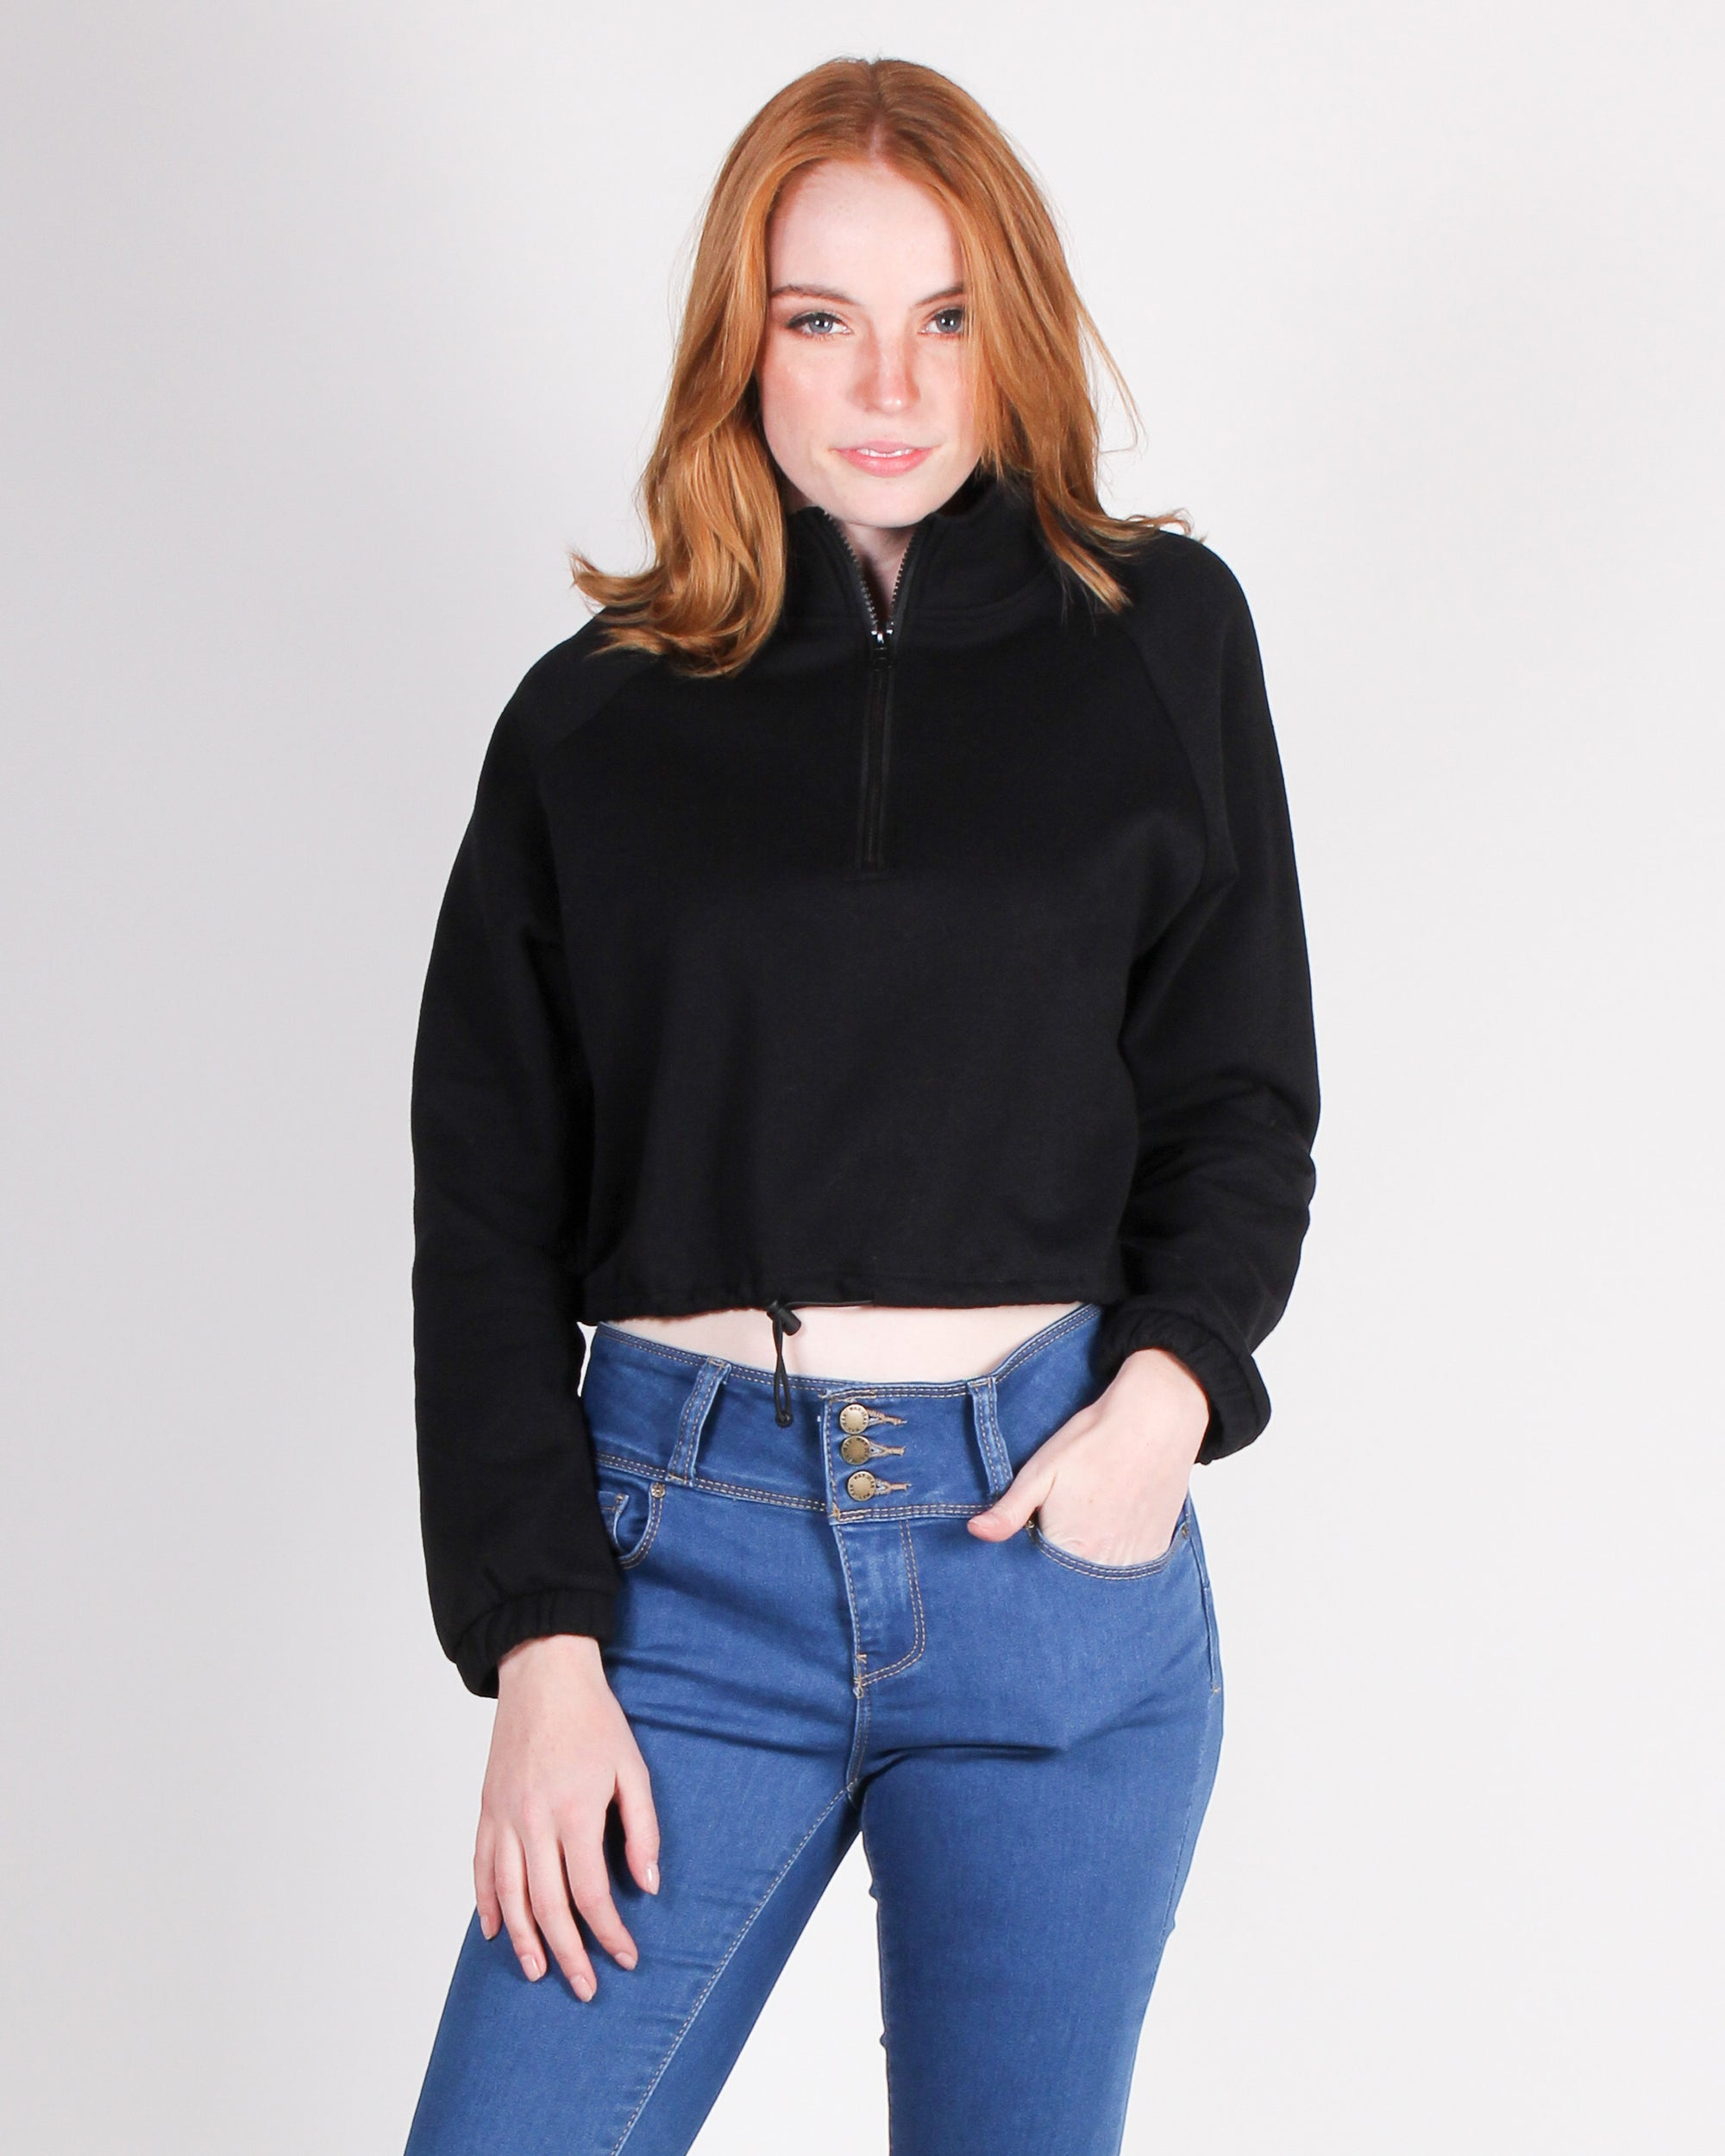 Fashion Q Shop Q Persistence Wins the Game Pullover (Black) T11011